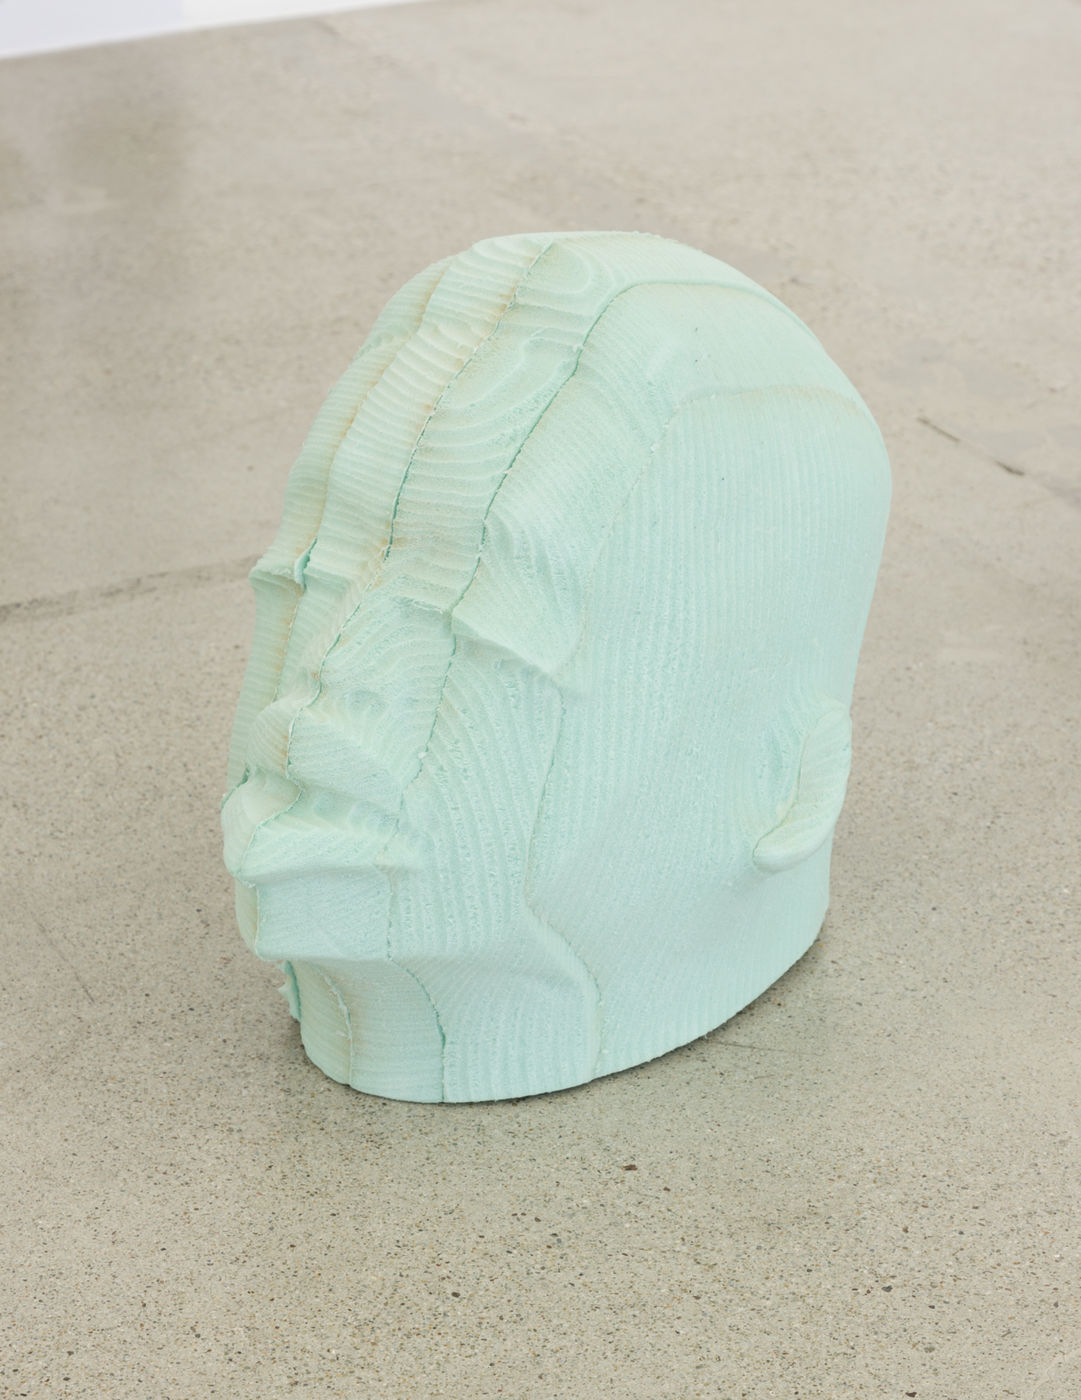 Harrison_Post-Chronology Series, Head #1, 2015_18 x 12 x 13 inches_MAH00001ST_PRS